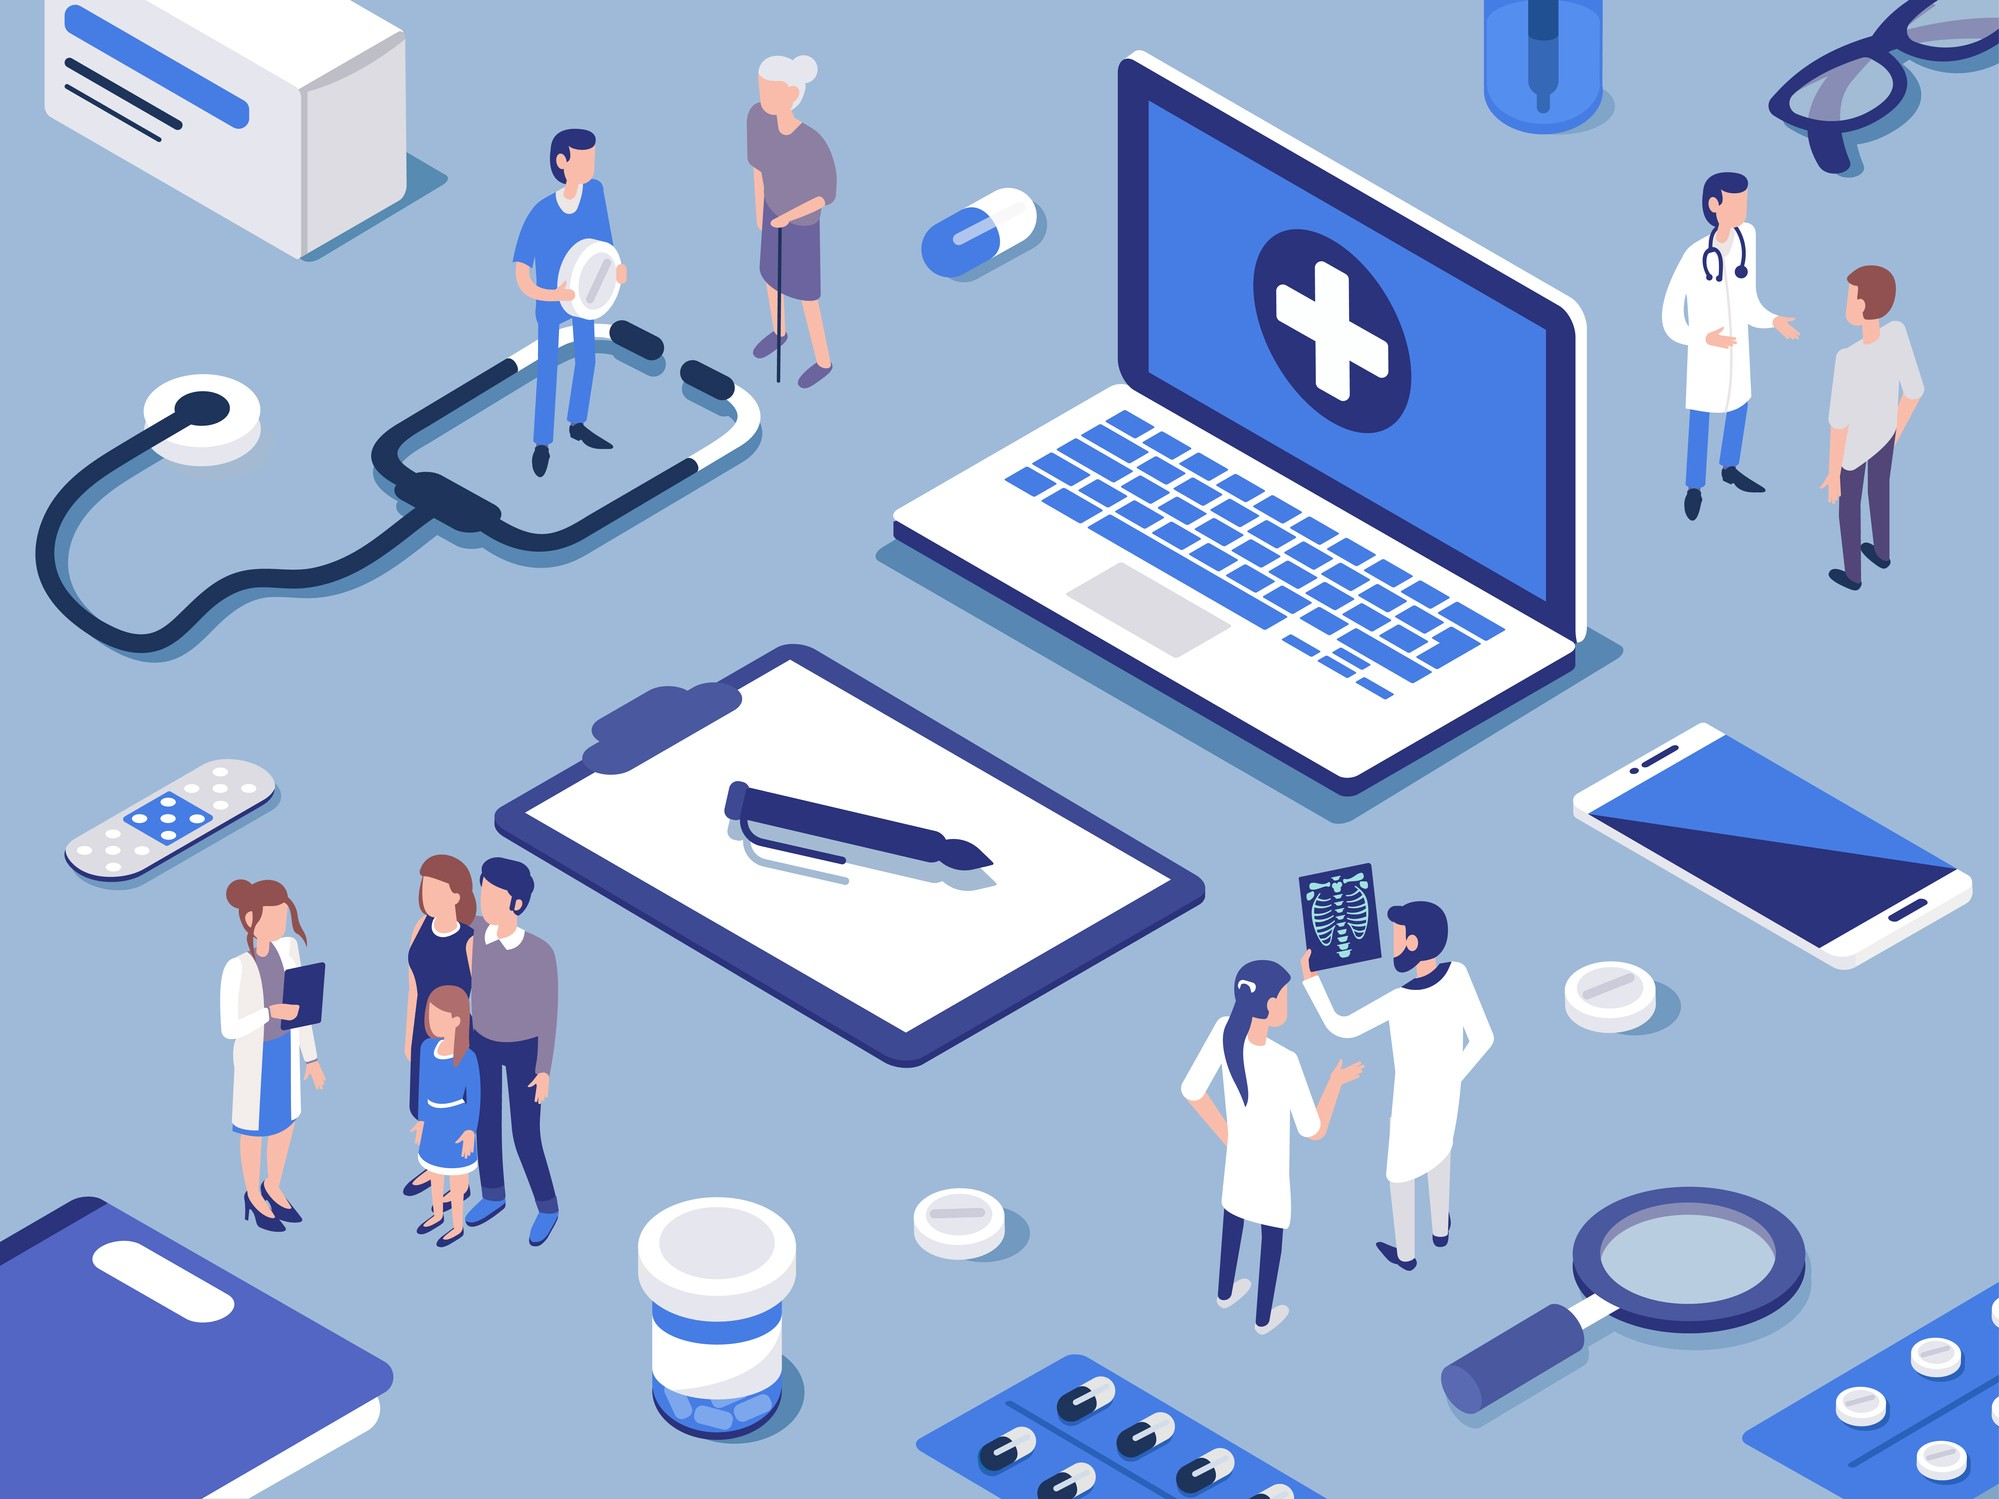 Why Picking a Health Plan Is So Confusing | by Michael Millenson | Elemental